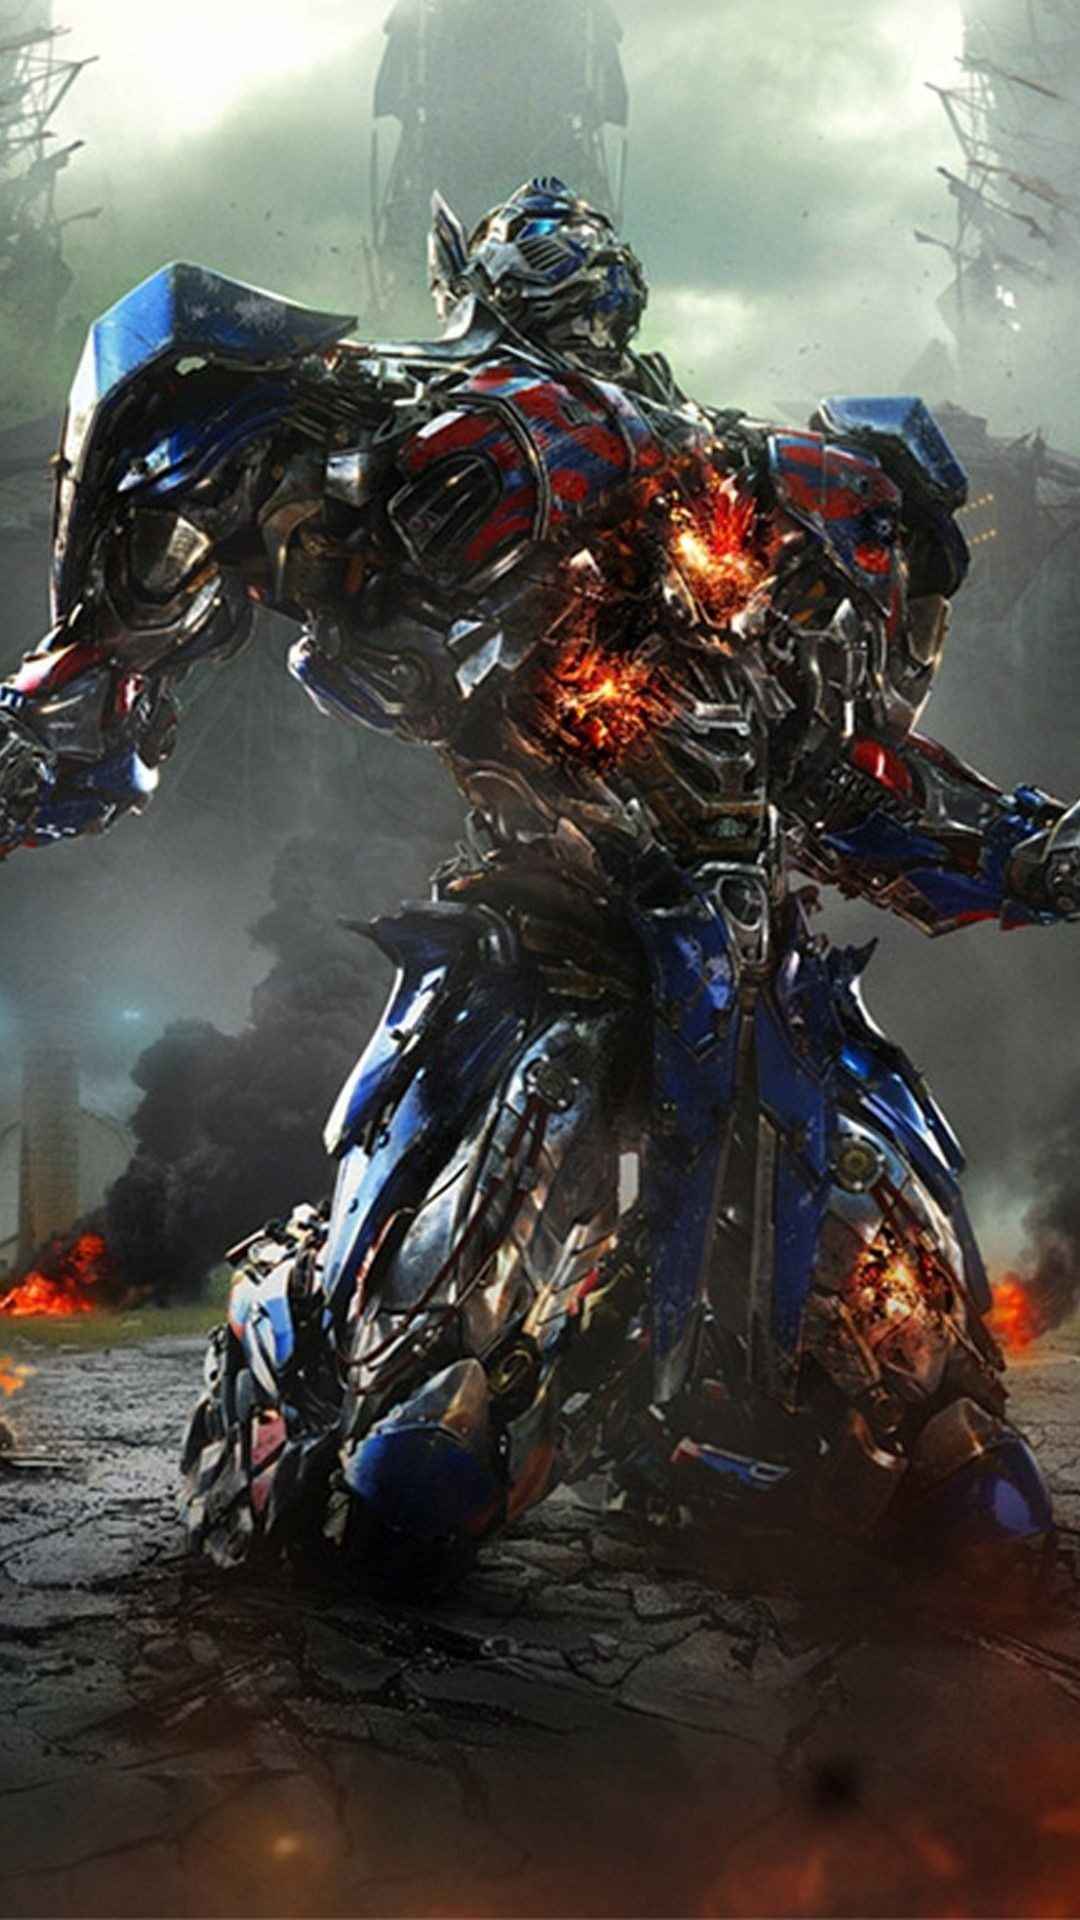 1080x1920  Movies iPhone 6 Plus Wallpapers - Transformers Optimus Prime  Movie iPhone 6 Plus HD Wallpaper #Movies #iPhone #6 #Plus #Wallpapers  #Transformers ...